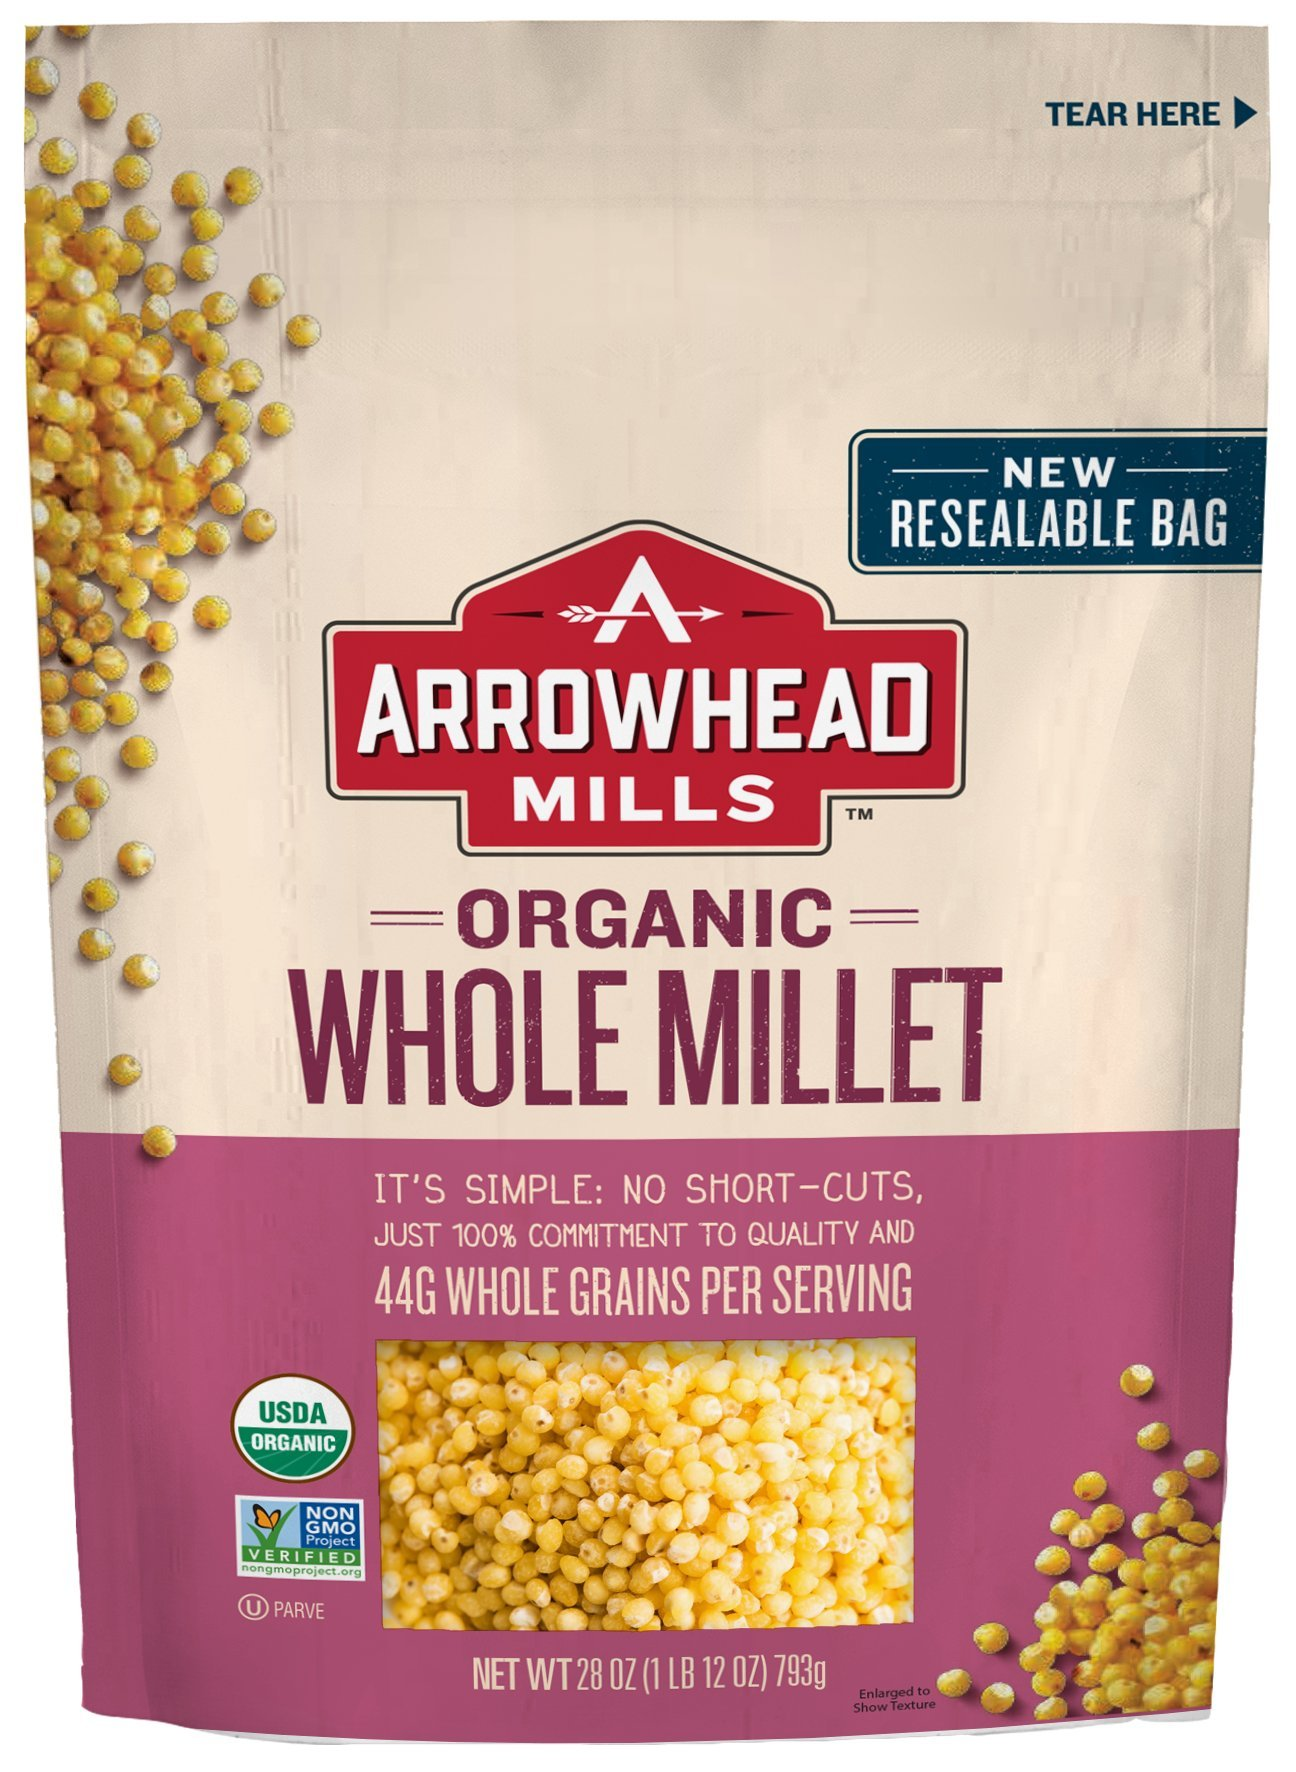 Arrowhead Mills Organic Whole Millet, 28 oz. Bag (Pack of 6) by Arrowhead Mills